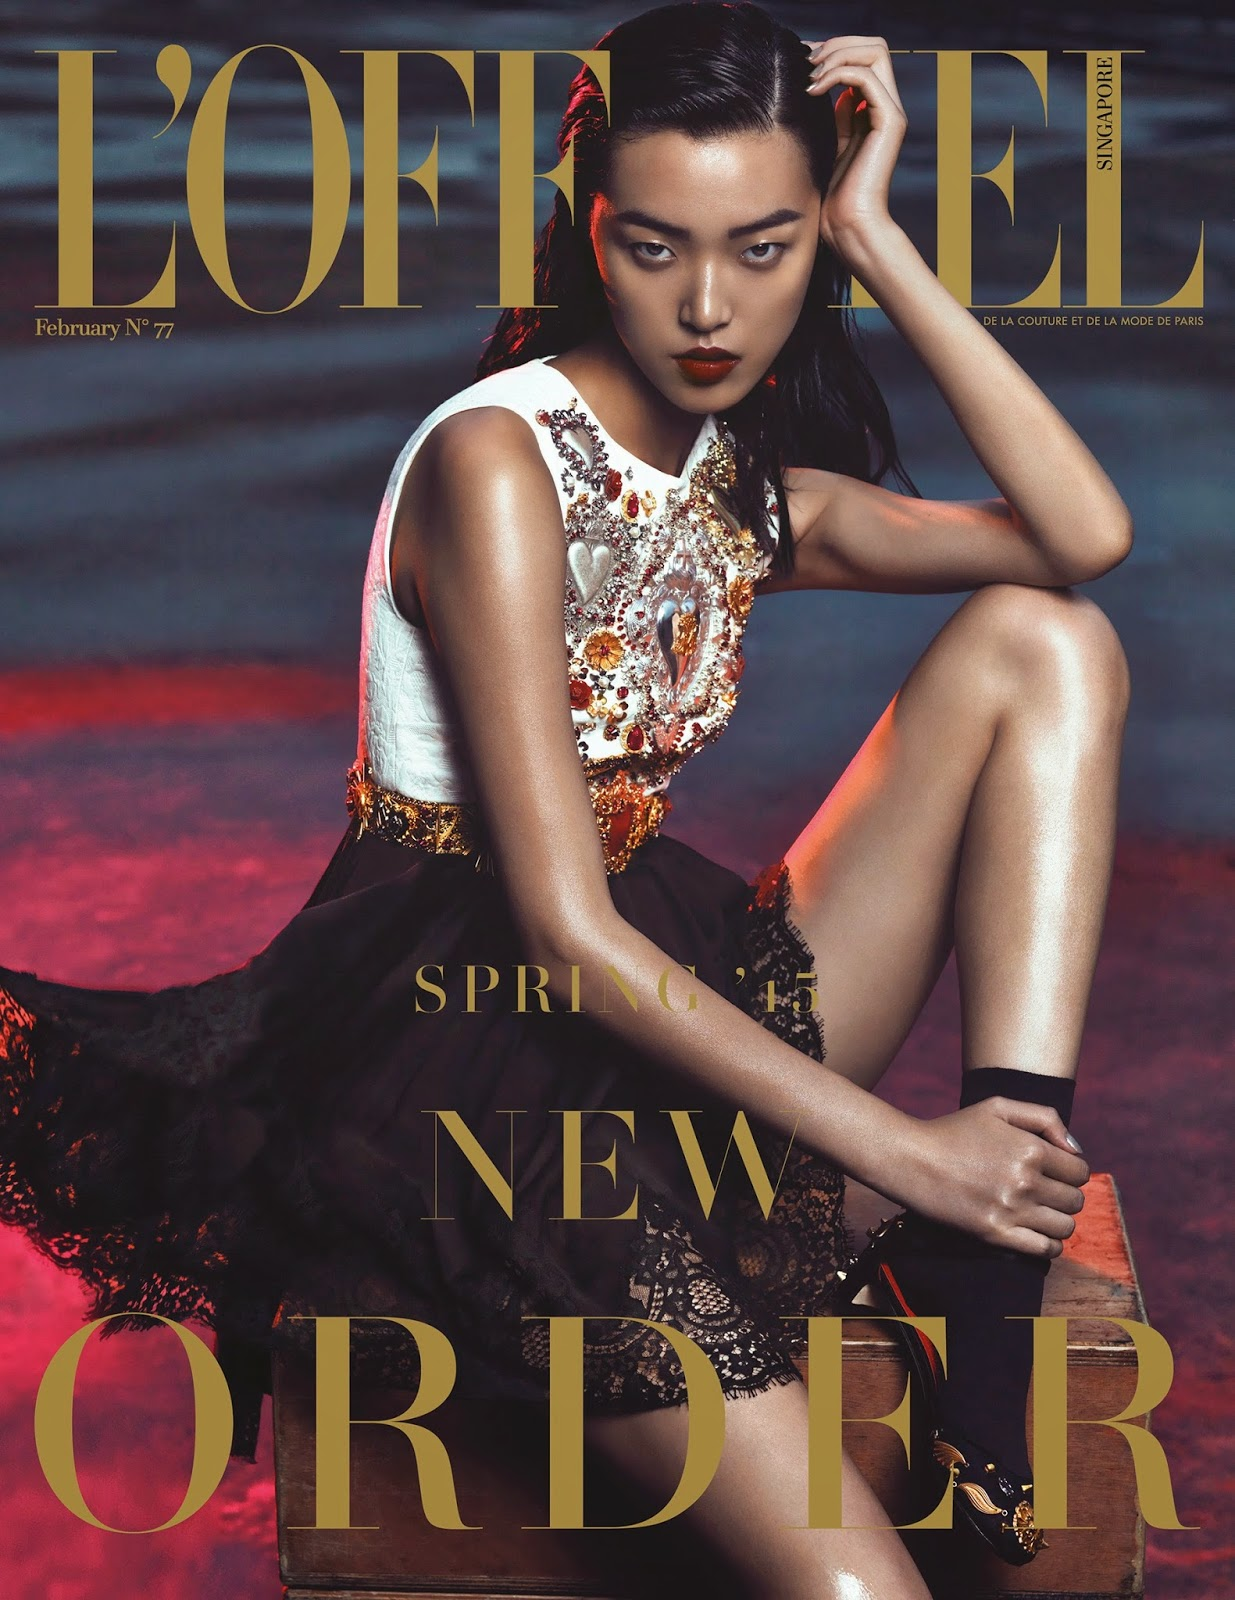 Model: Tian Yi You by Yin Chao for L'Officiel, Singapore